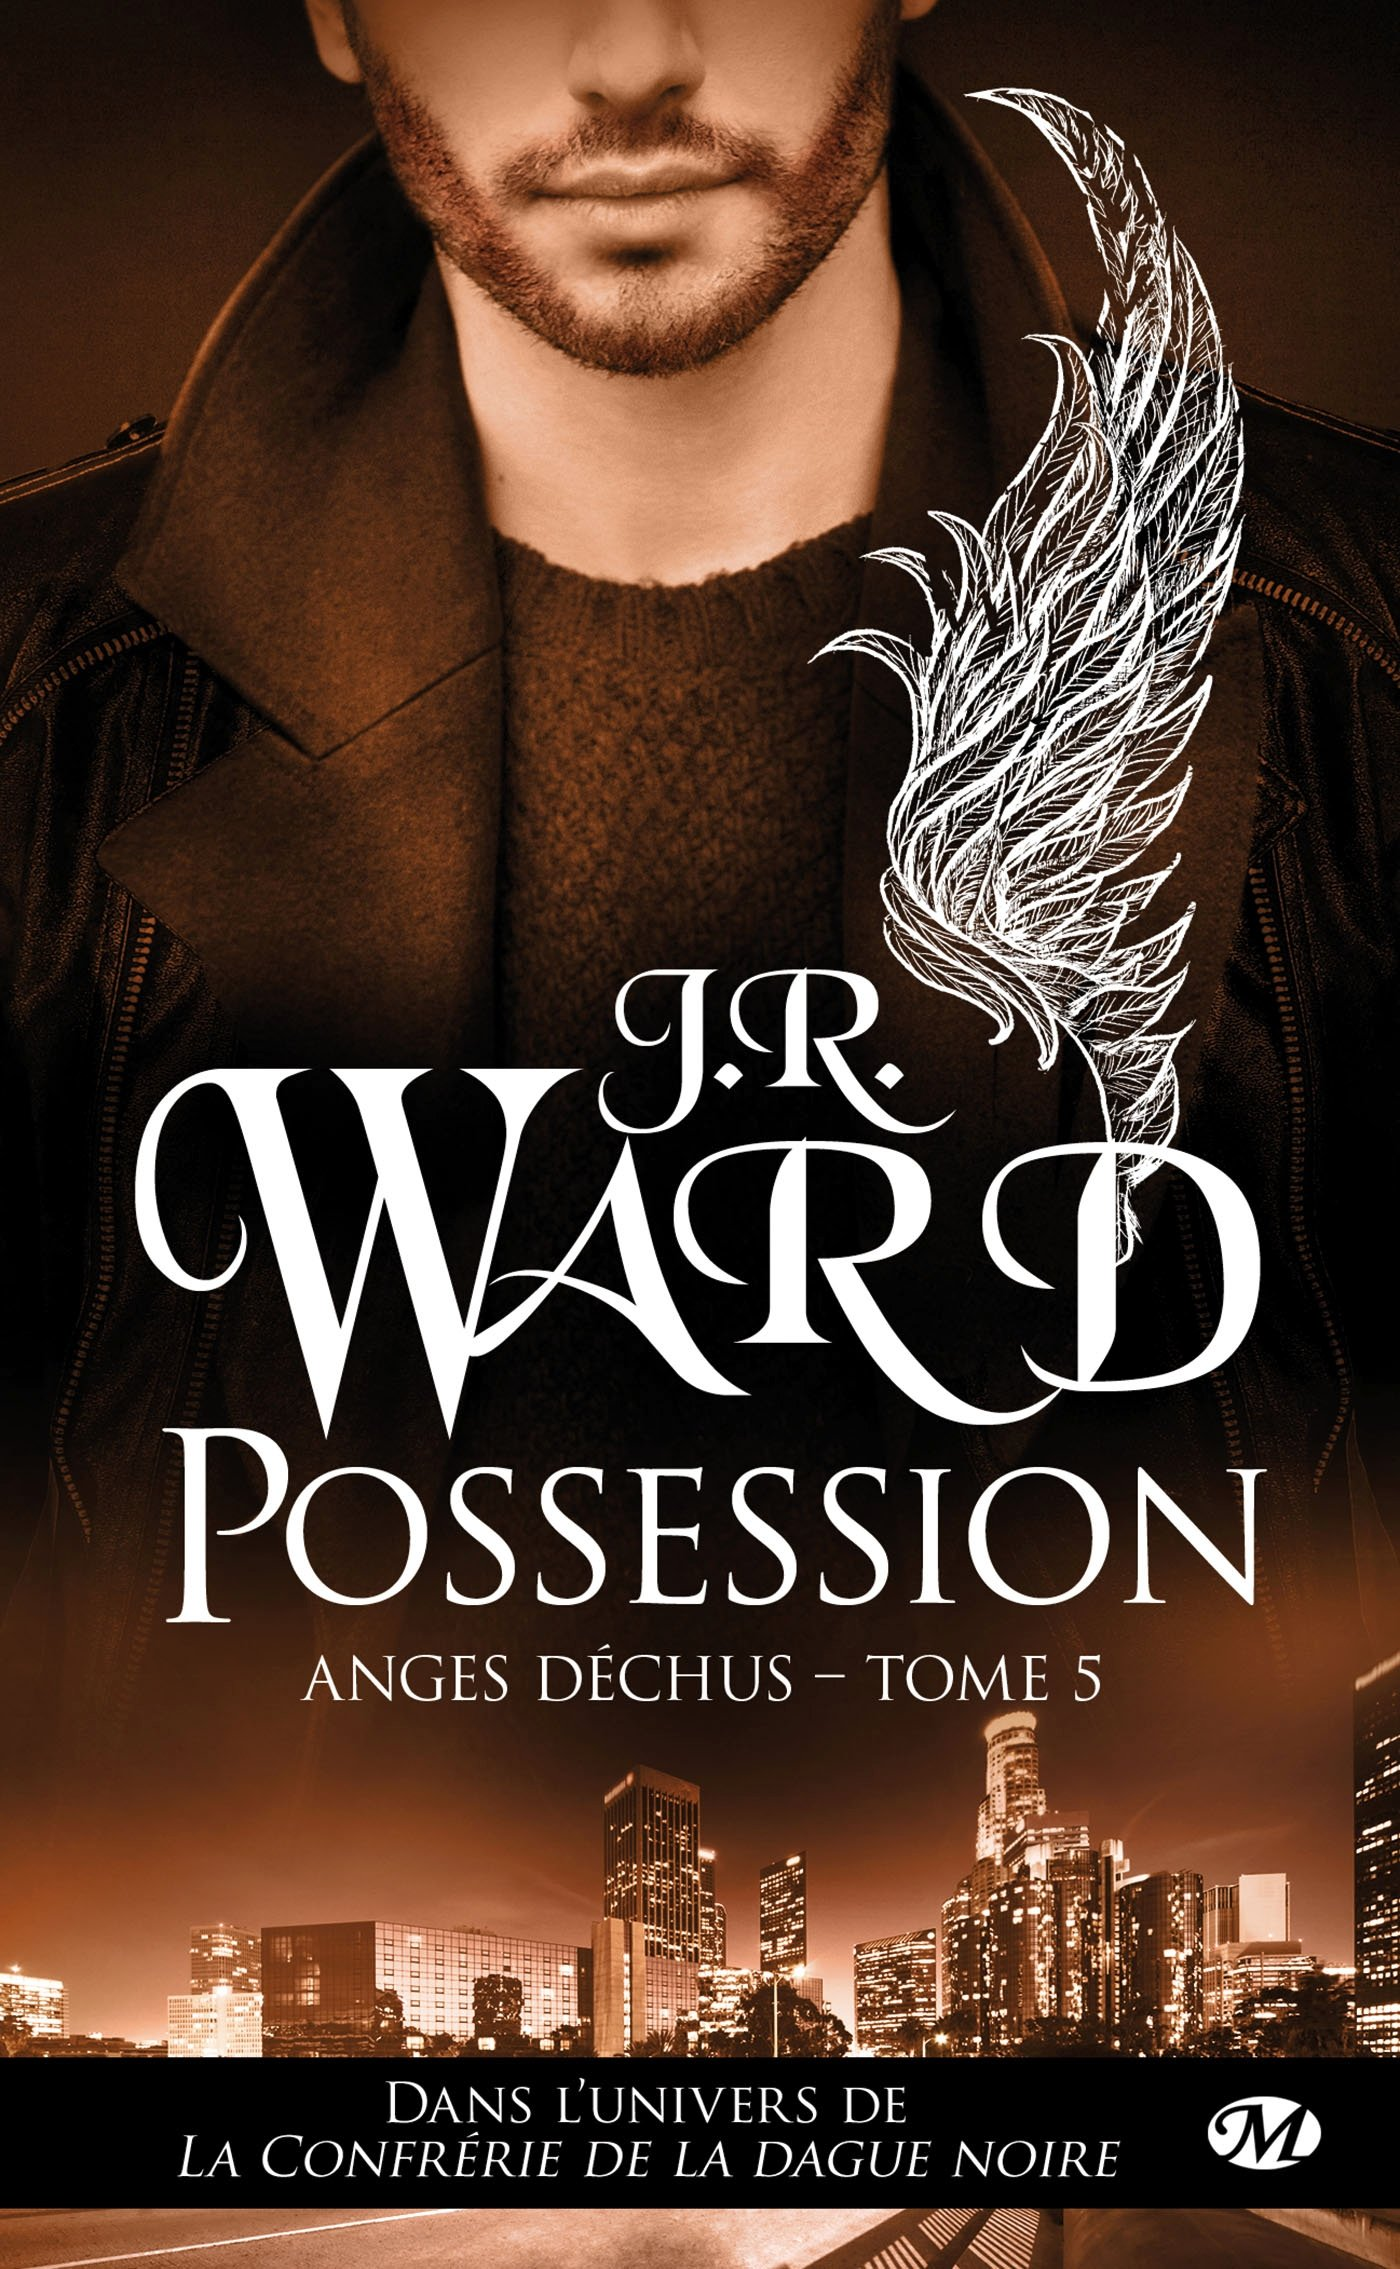 Anges déchus, Tome 5: Possession Poche – 20 juin 2014 J.R. Ward Milady 2811212132 Fantastique